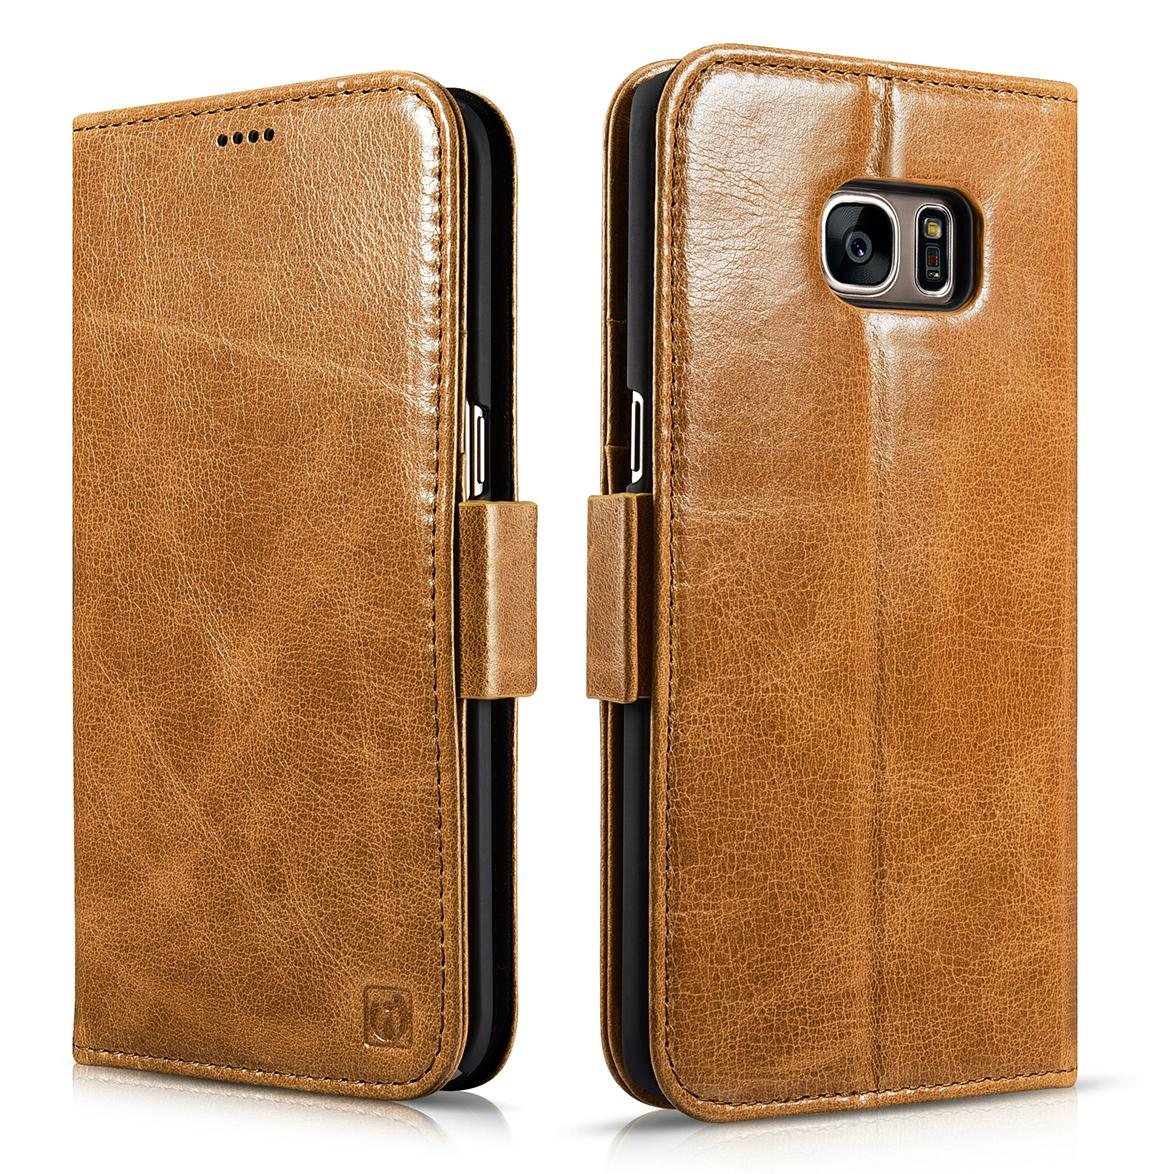 iCarer Samsung Galaxy S7 Edge Leather Detachable 2 in 1 Wallet Folio Case 1